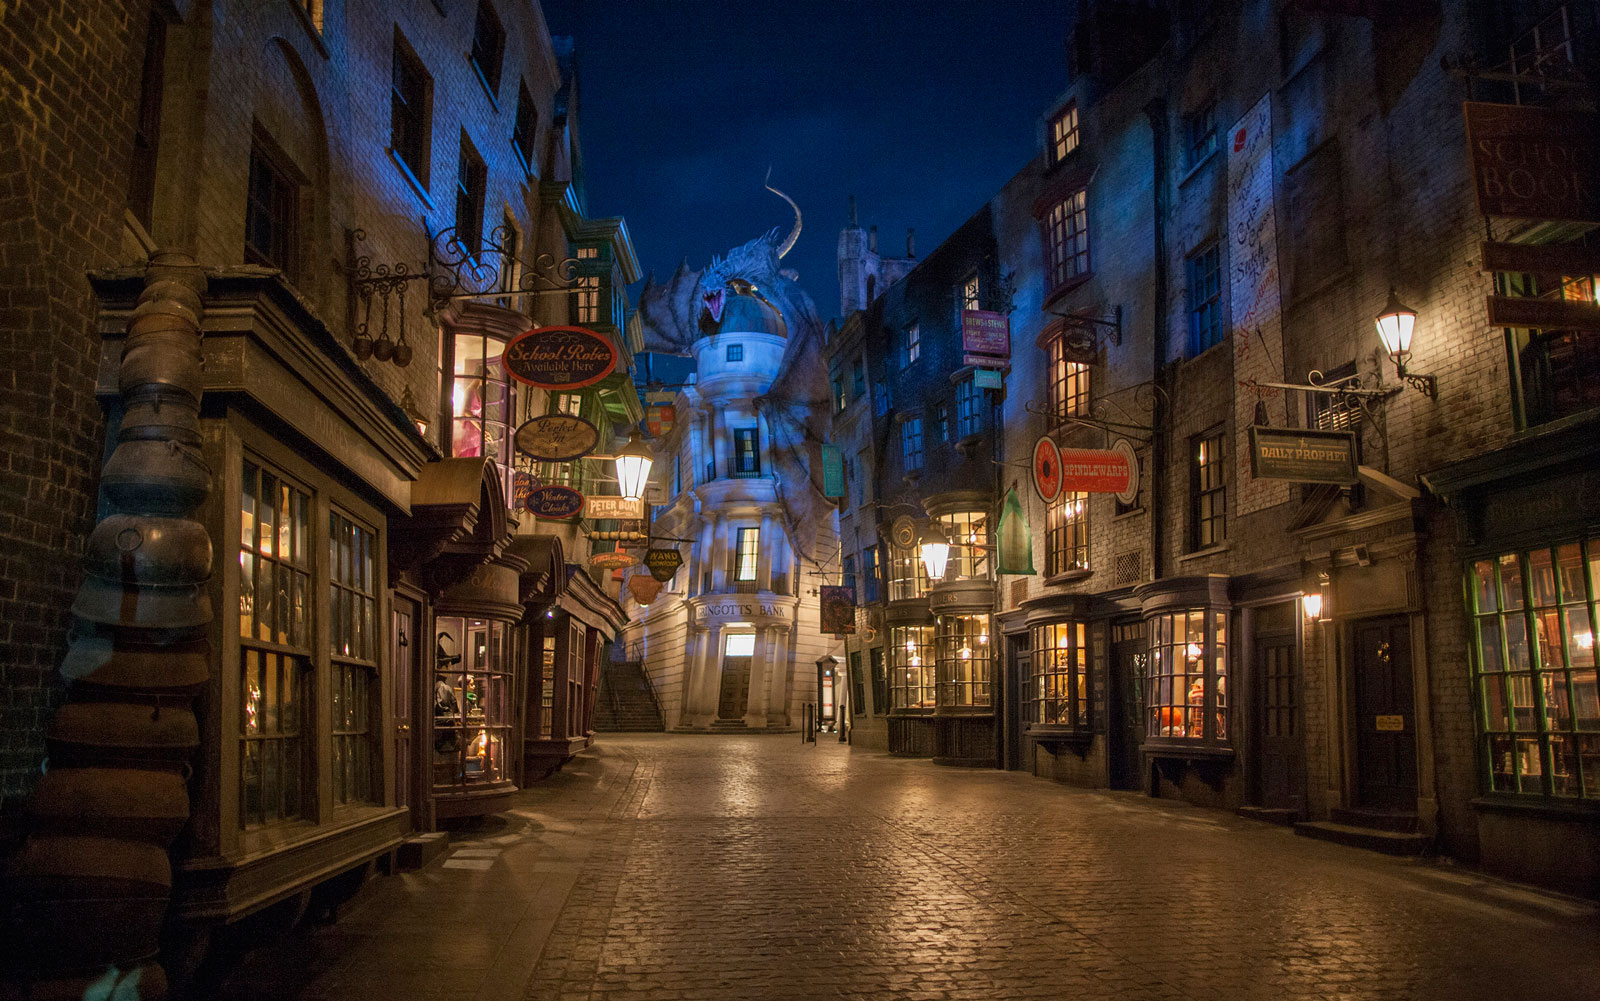 Diagon Alley at Harry Potter World